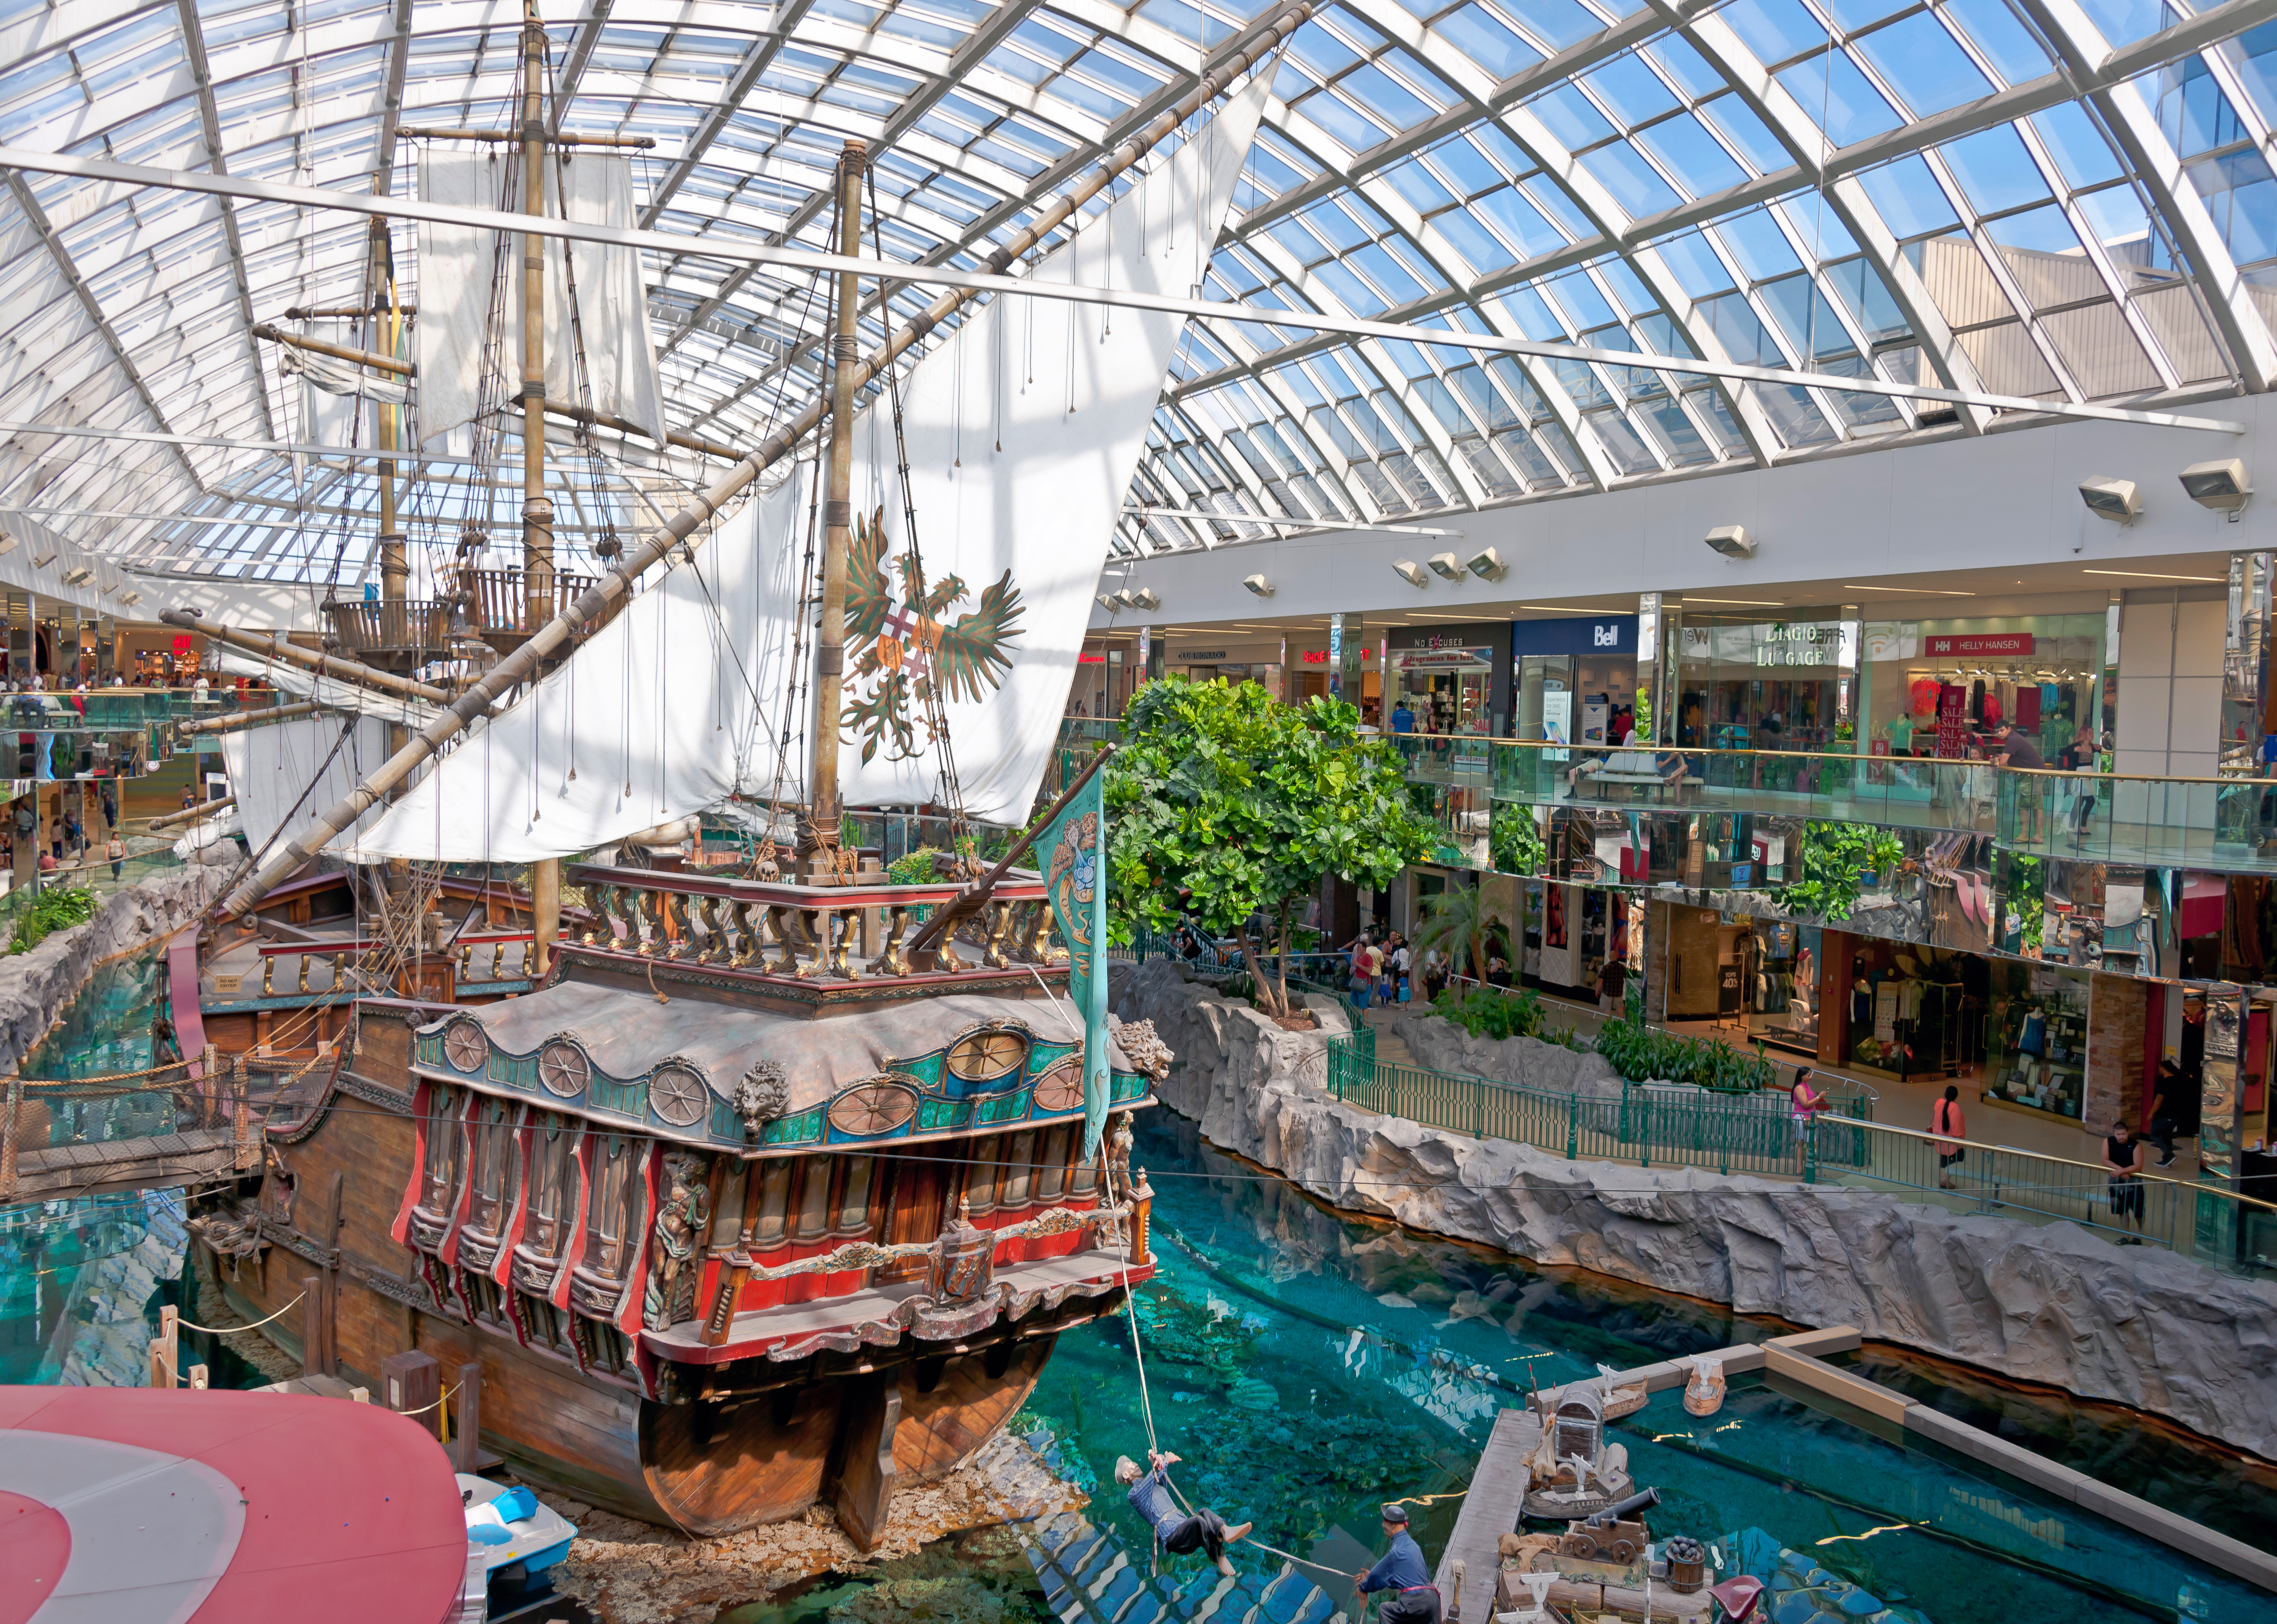 Pirate_ship_in_the_West_Edmonton_Mall